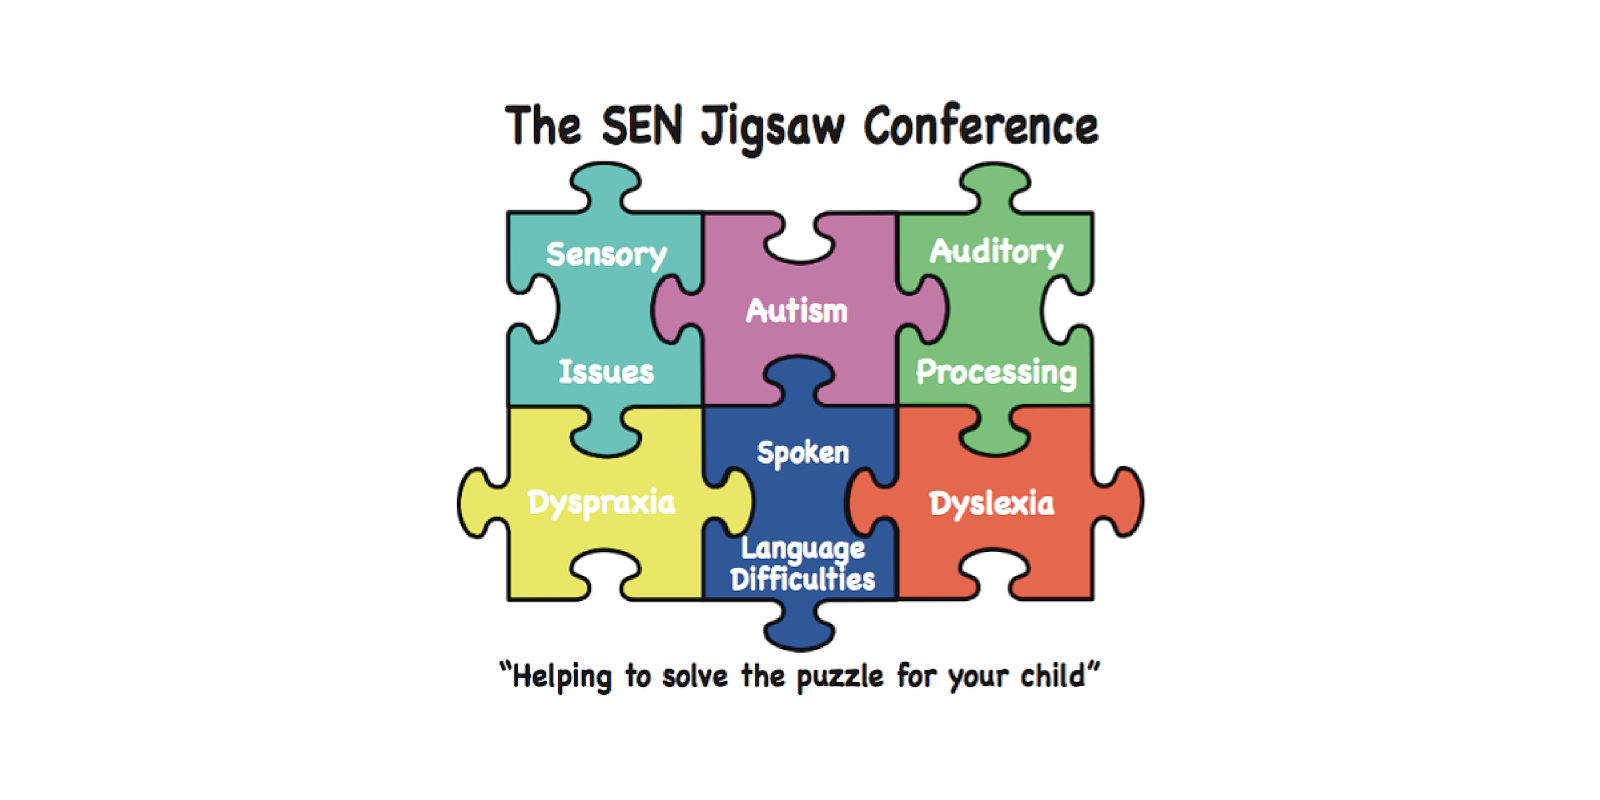 The SEN Jigsaw Conference 2018